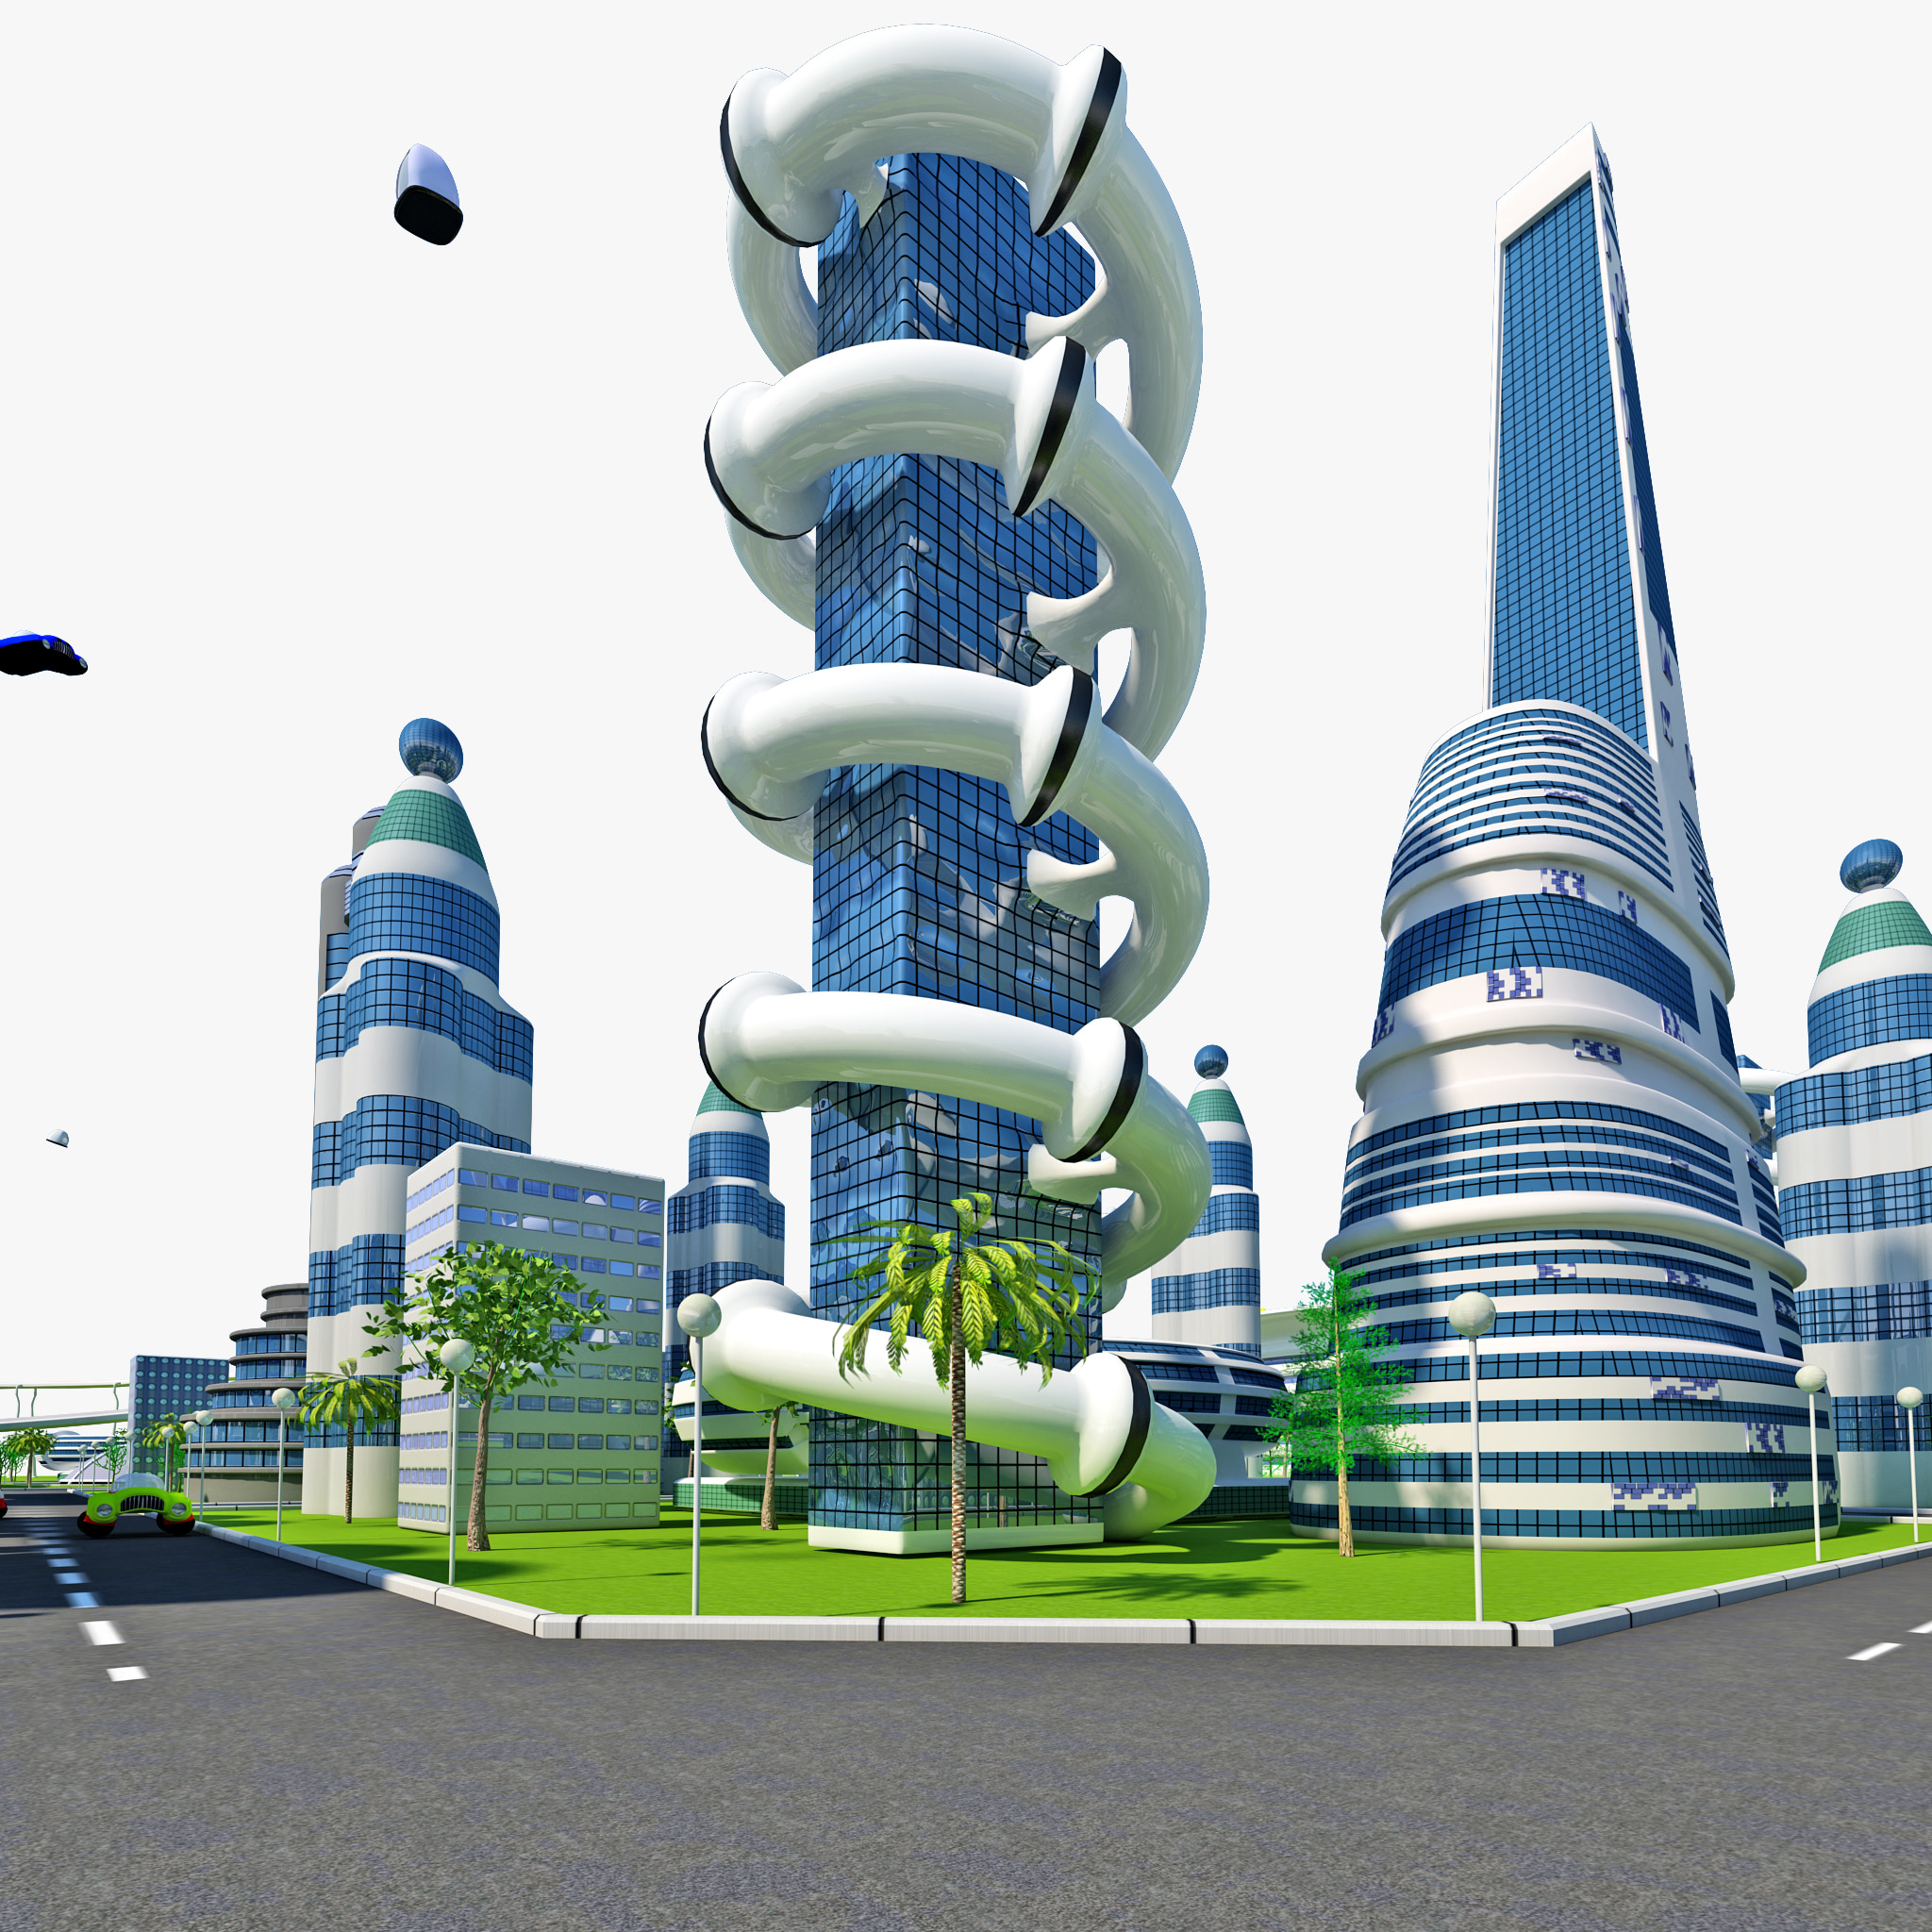 Future Futuristic City_662.jpg